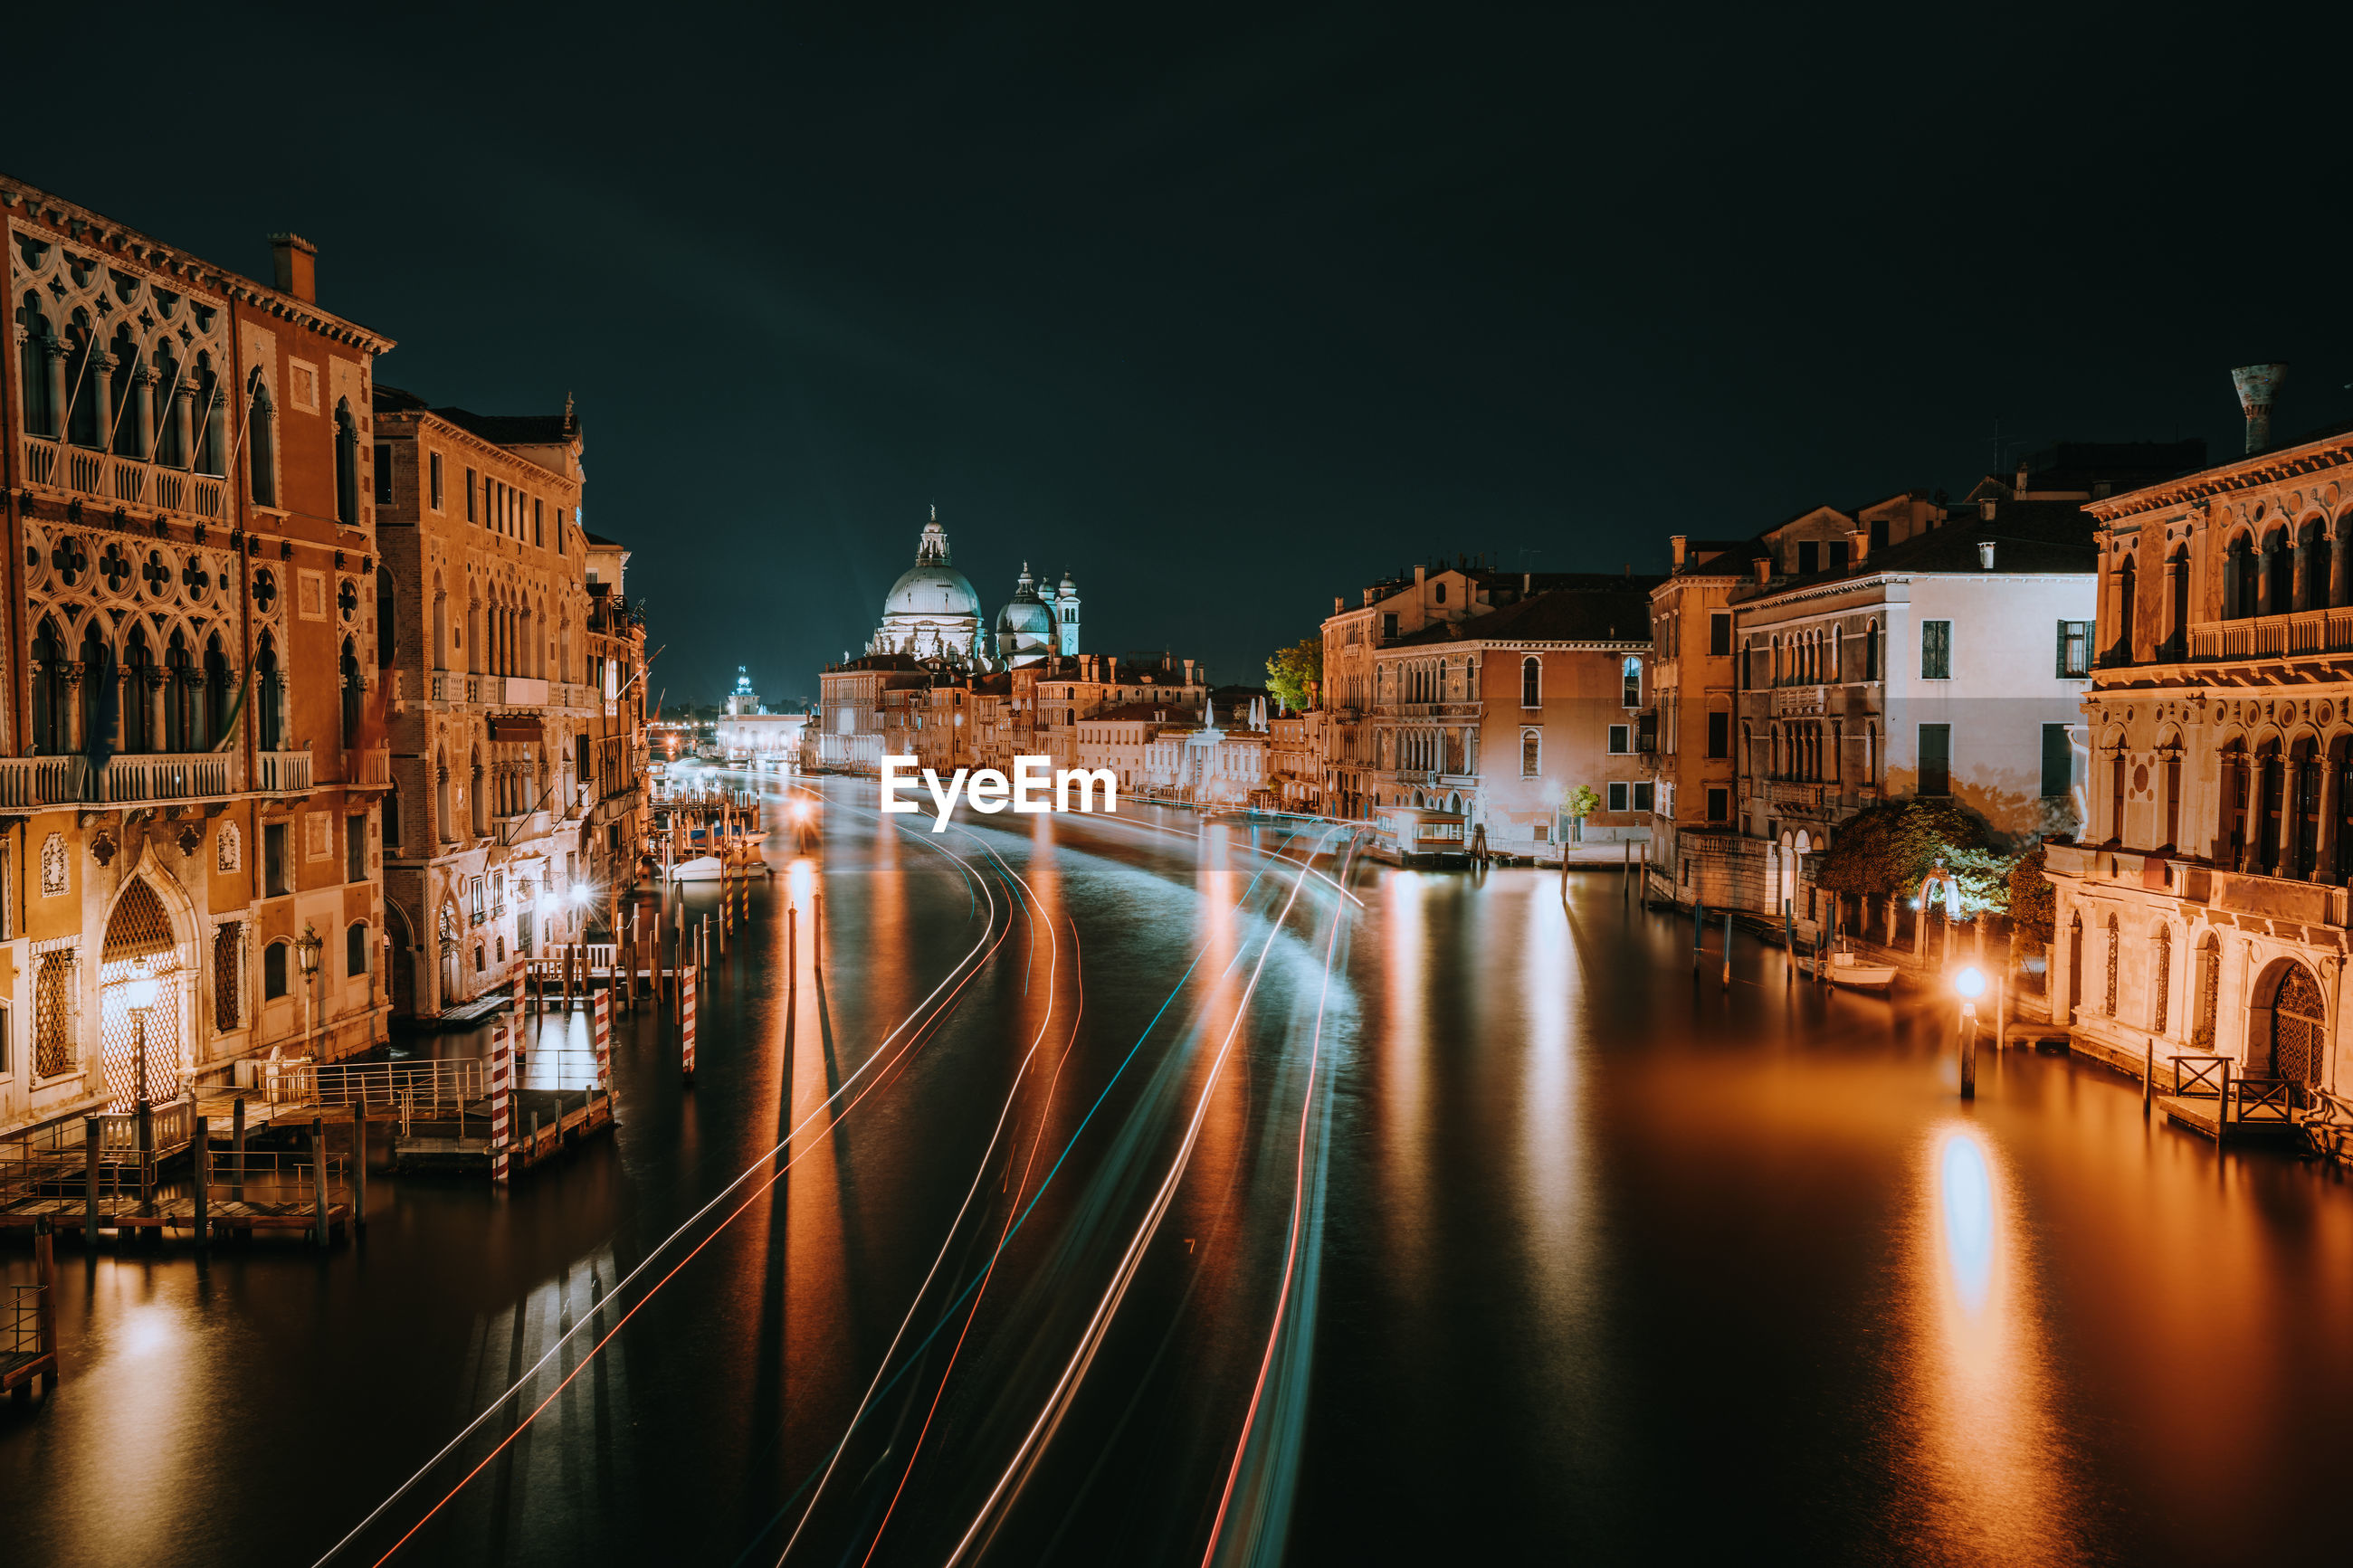 Light trails on river amidst illuminated buildings in city at night